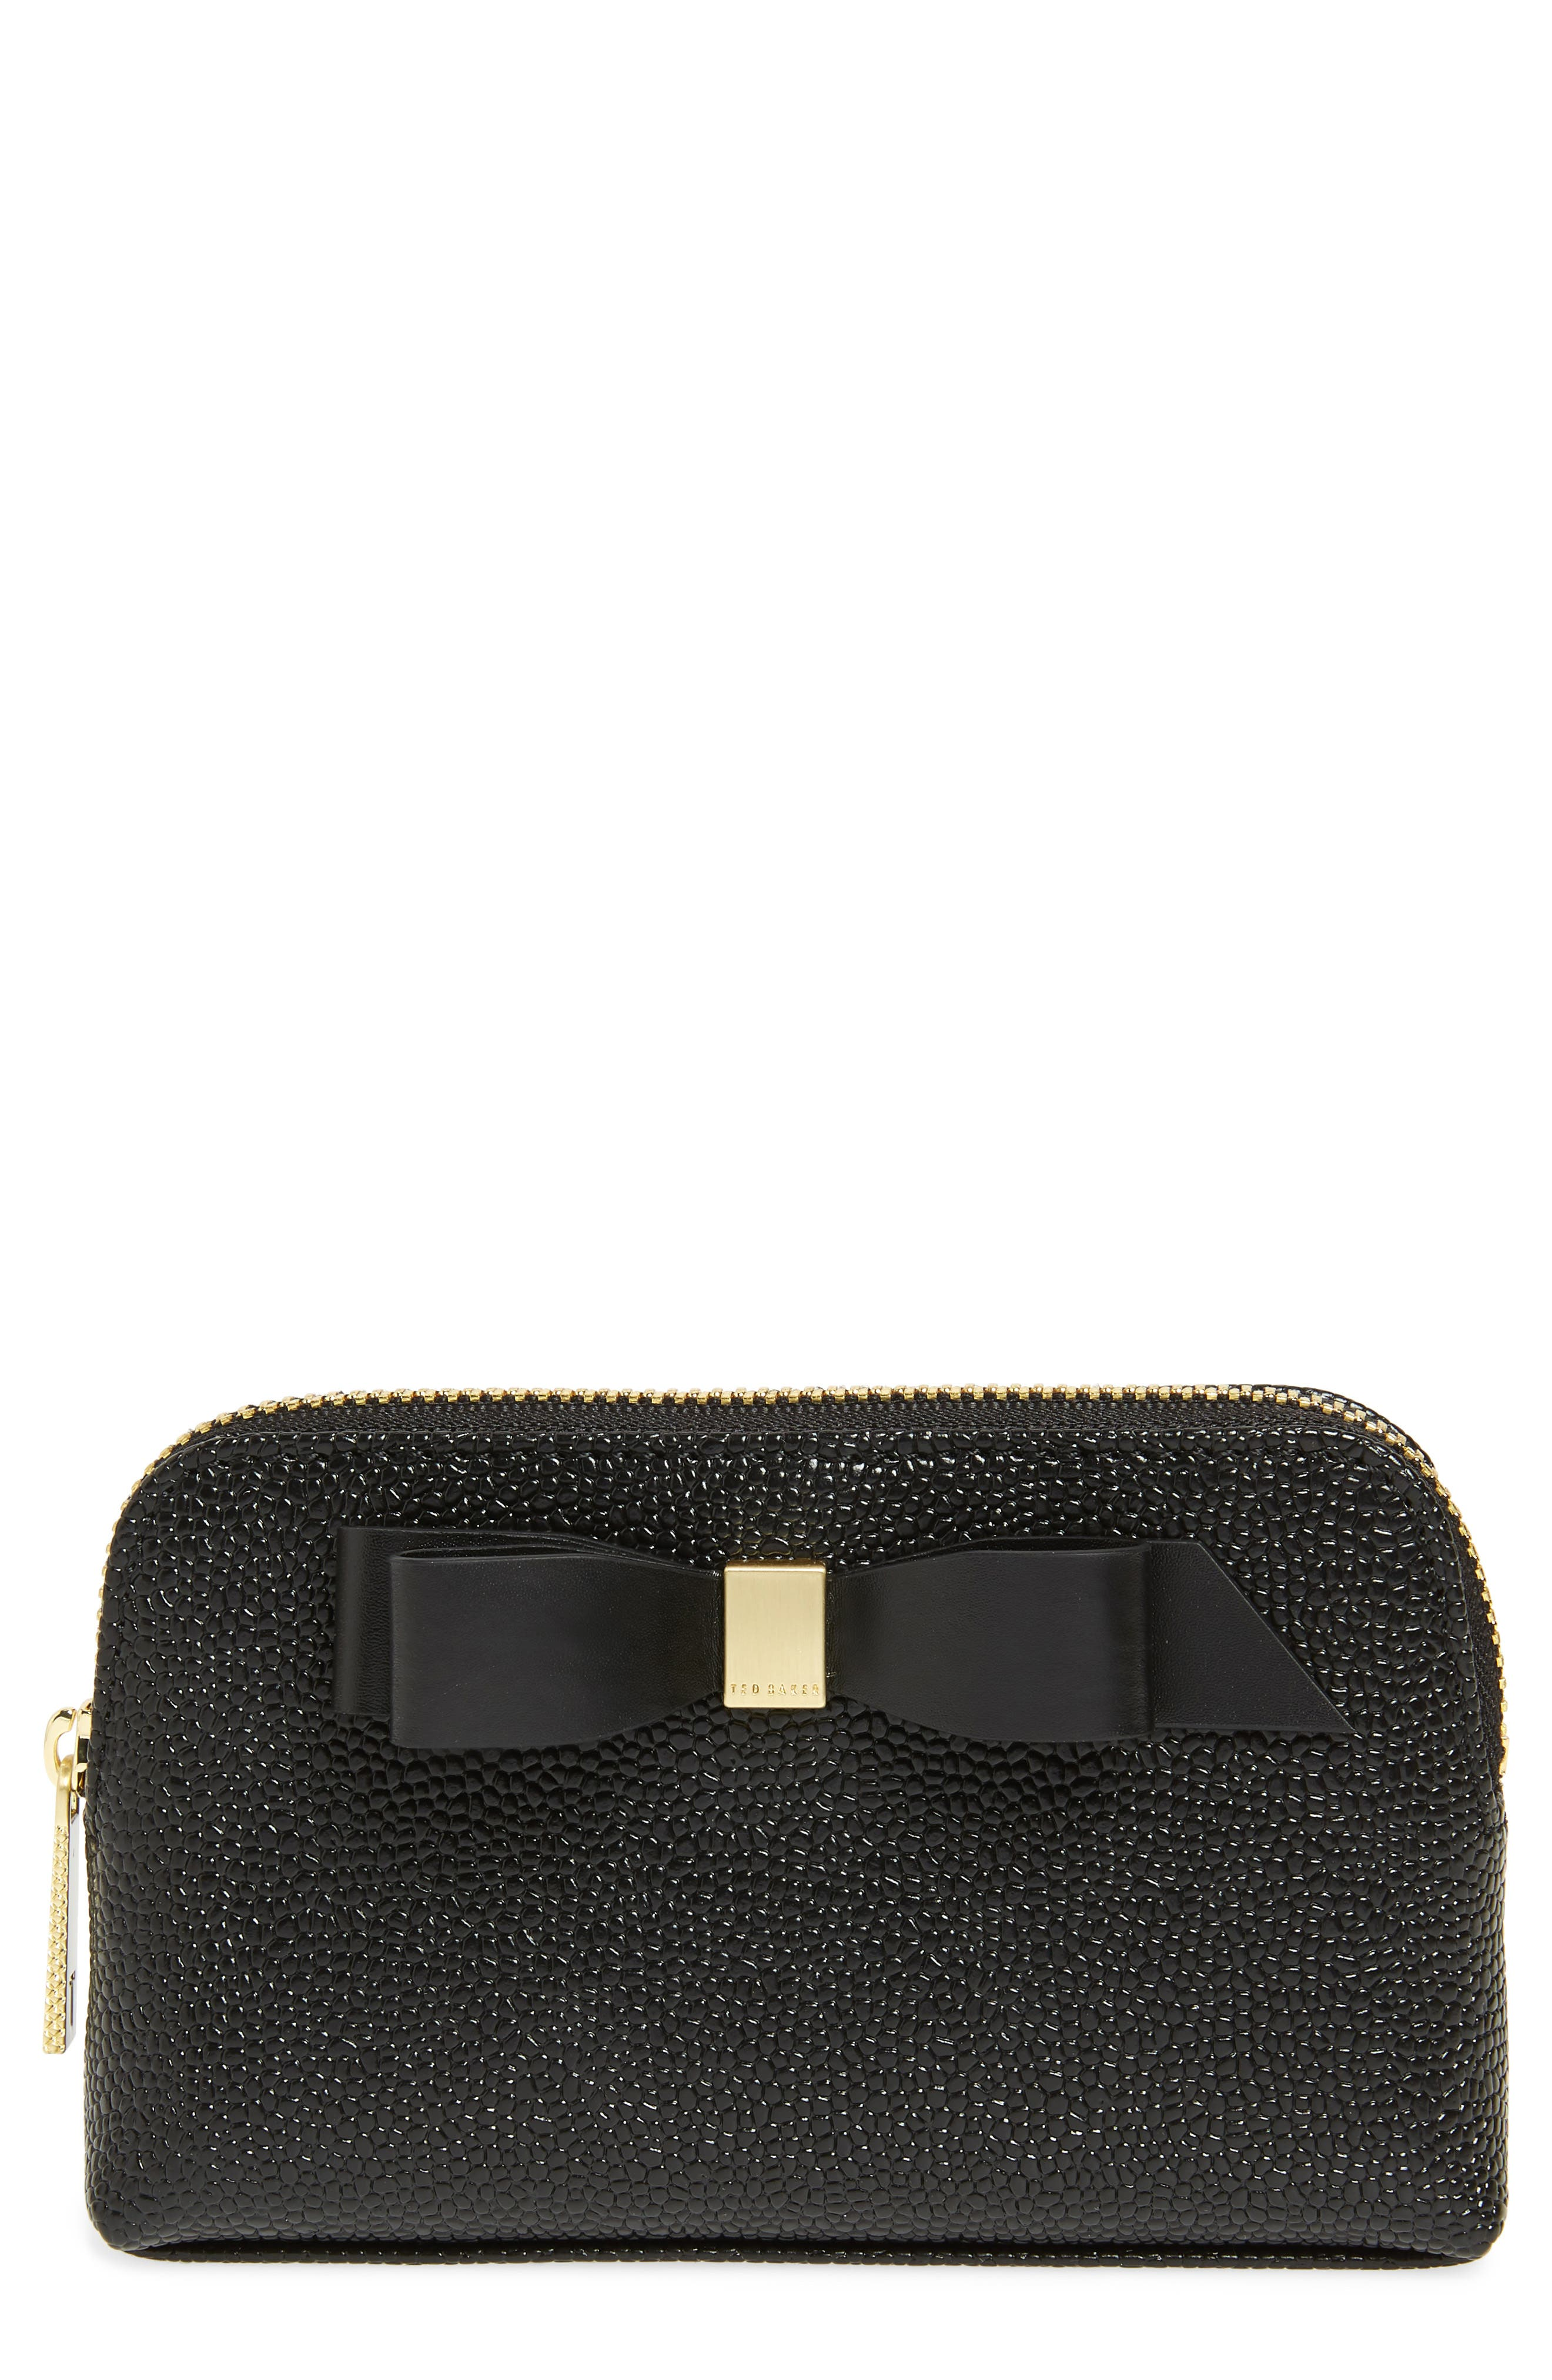 Emmahh Bow Small Leather Cosmetics Case, Main, color, BLACK